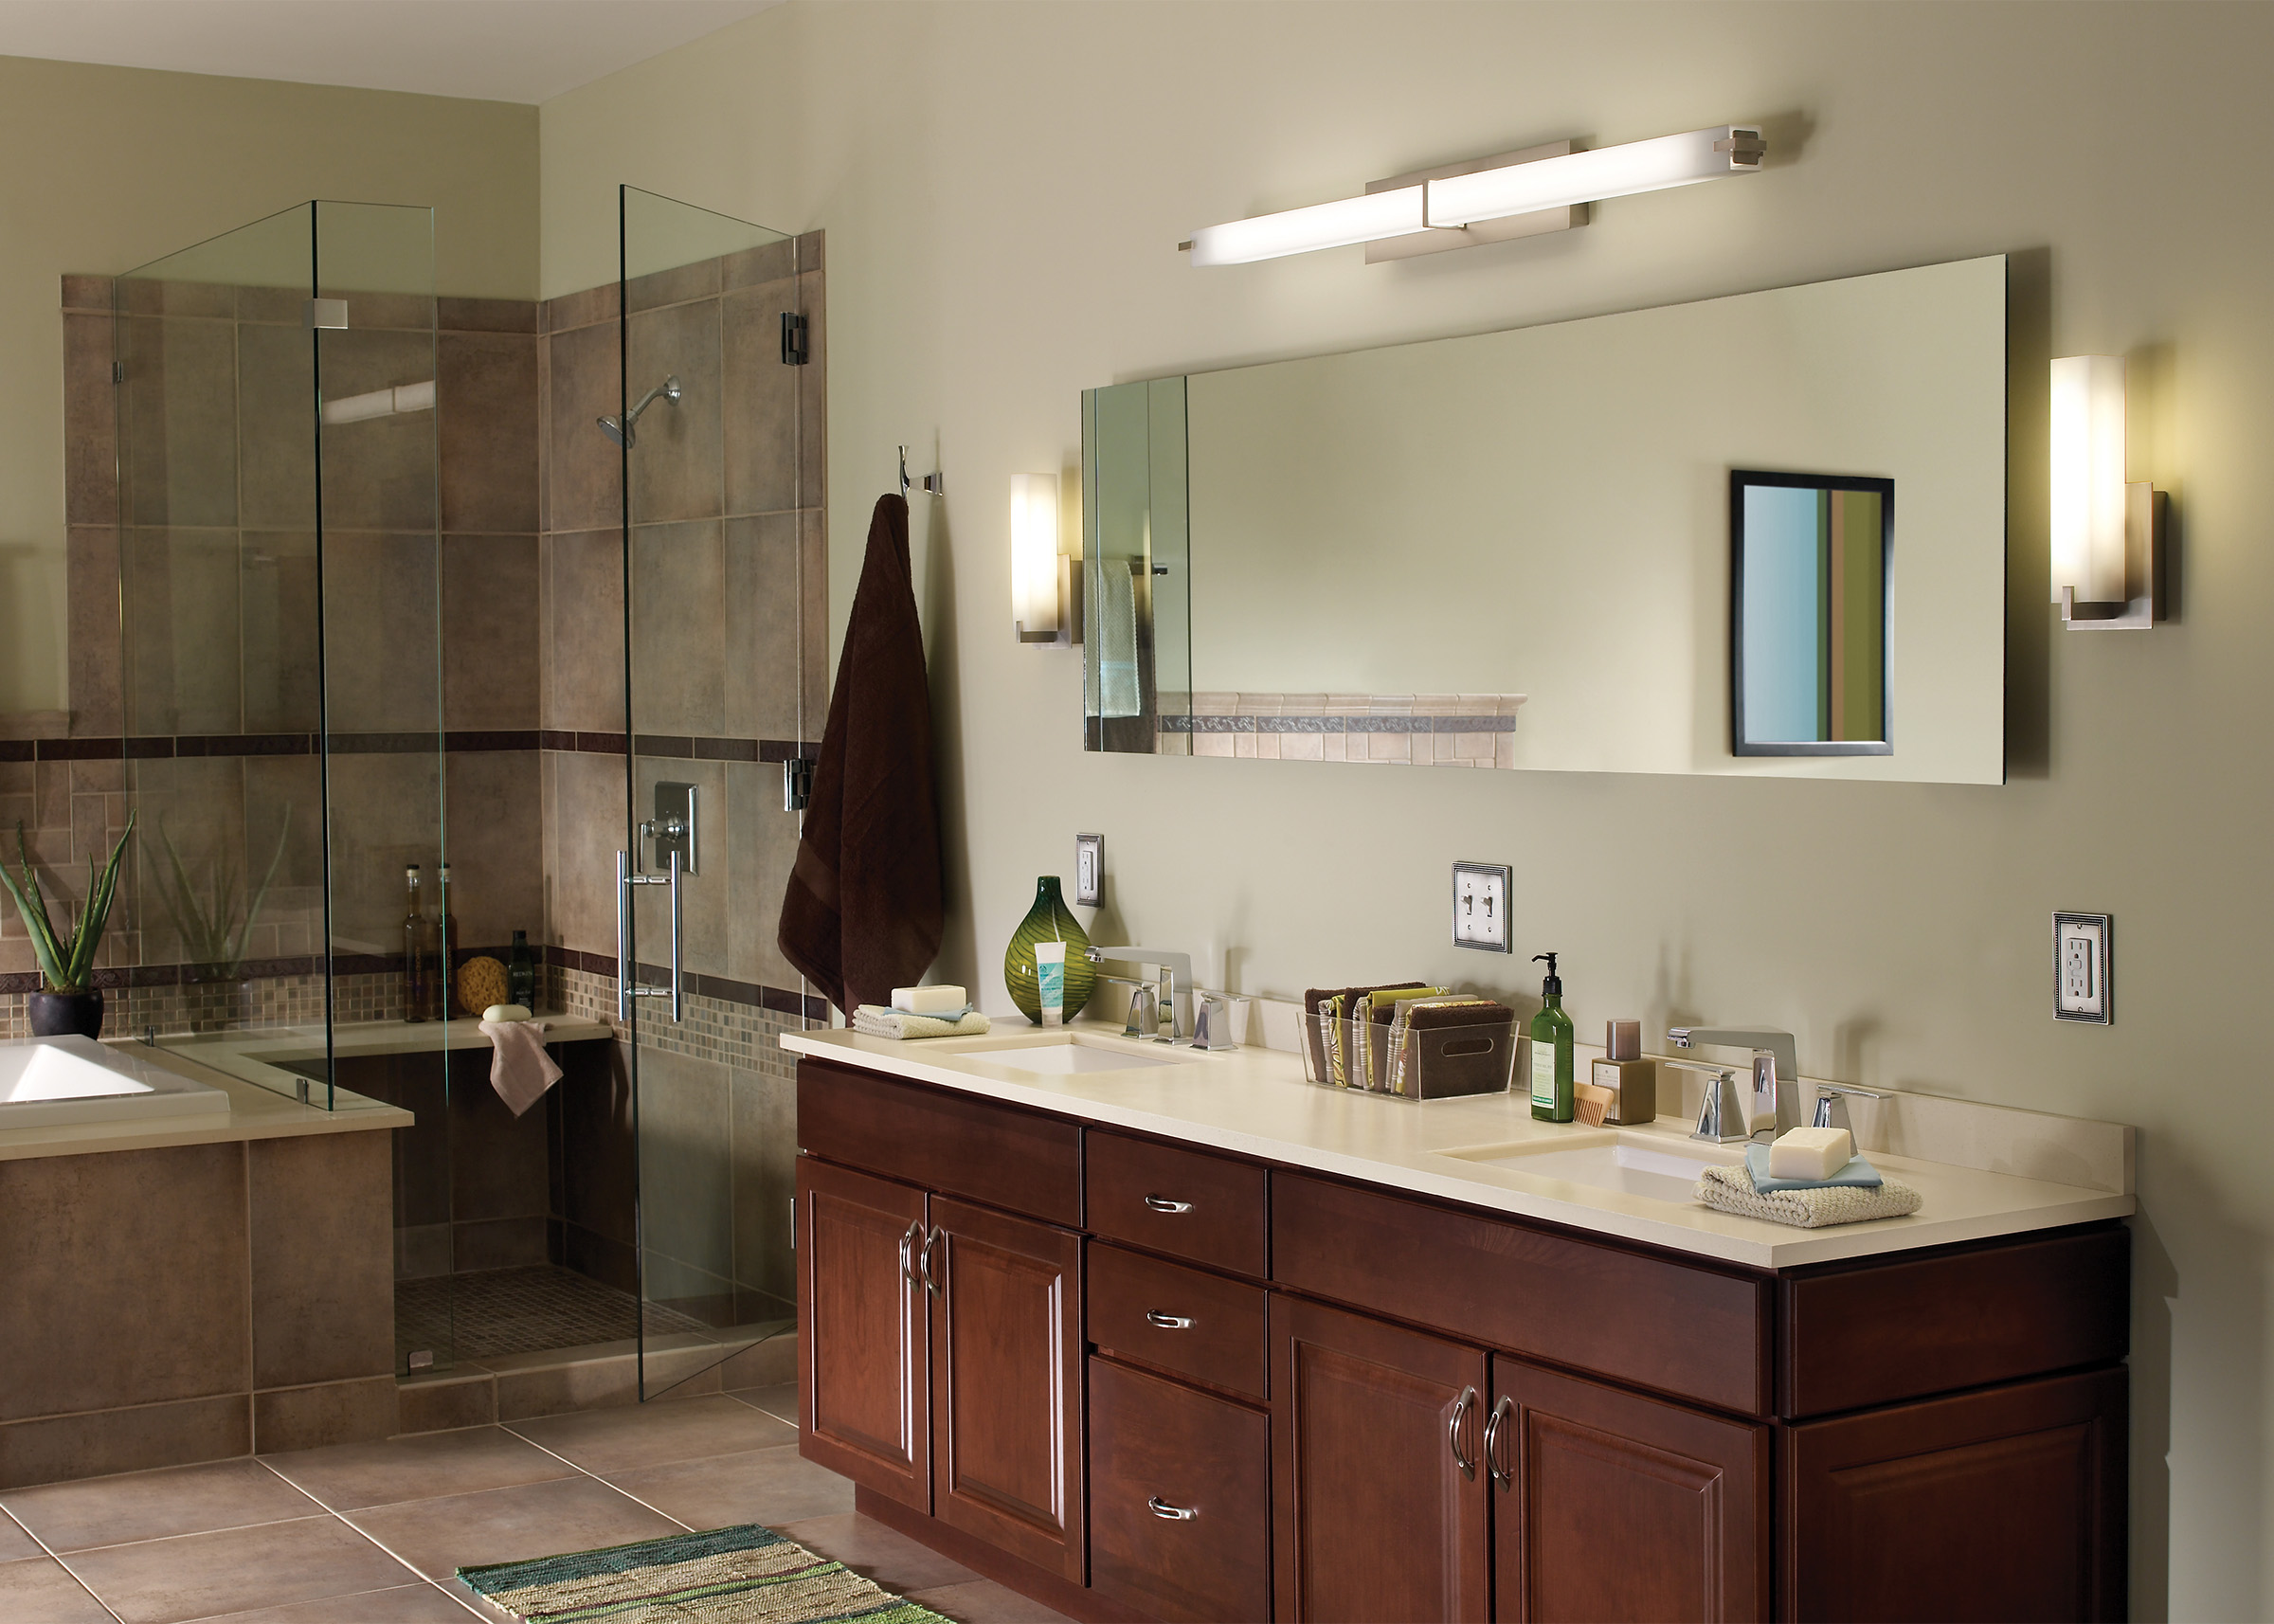 Bathroom Lights For Mirrors do i need damp rated lights for my bathroom? - flip the switch